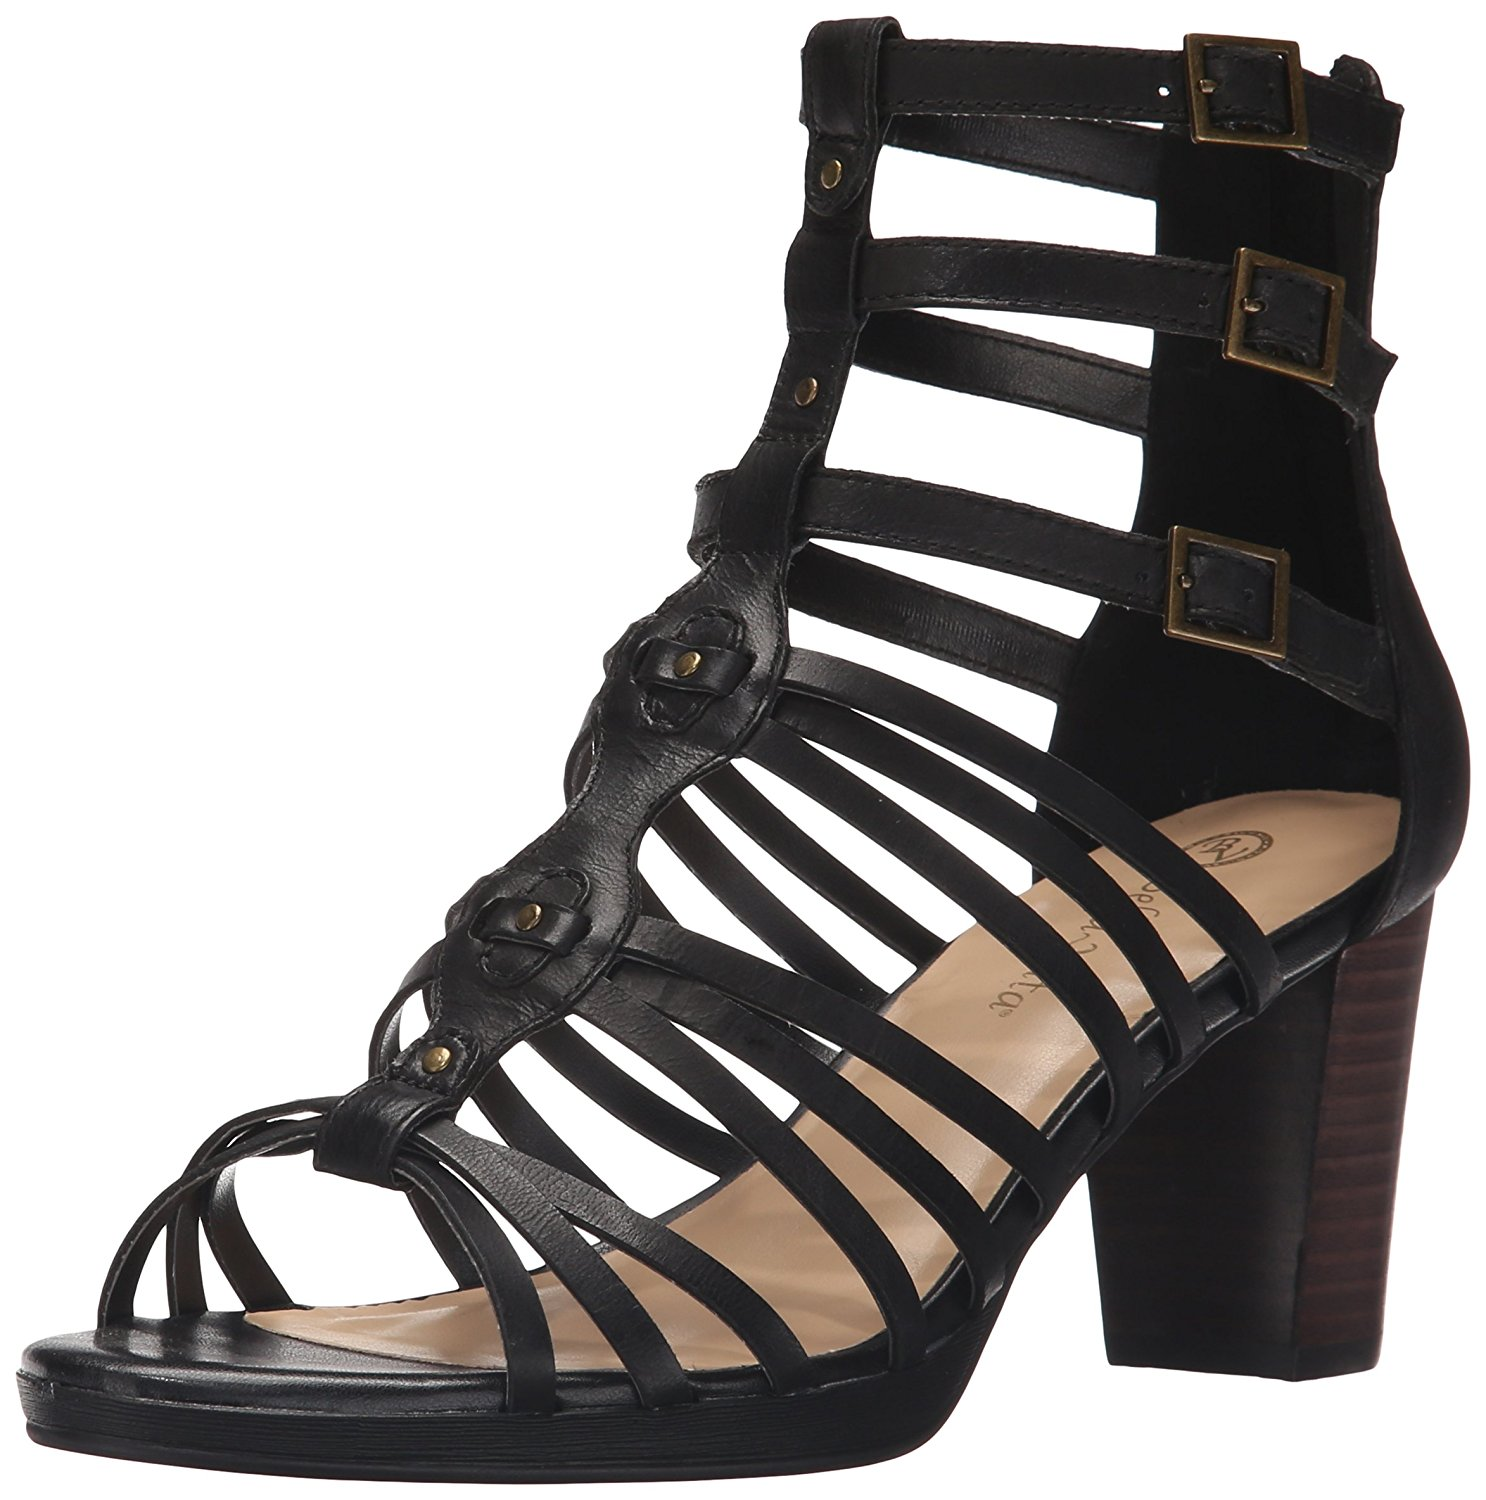 Bella Vita Womens Layne Leather Open Toe Special Occasion Strappy Sandals by Bella Vita